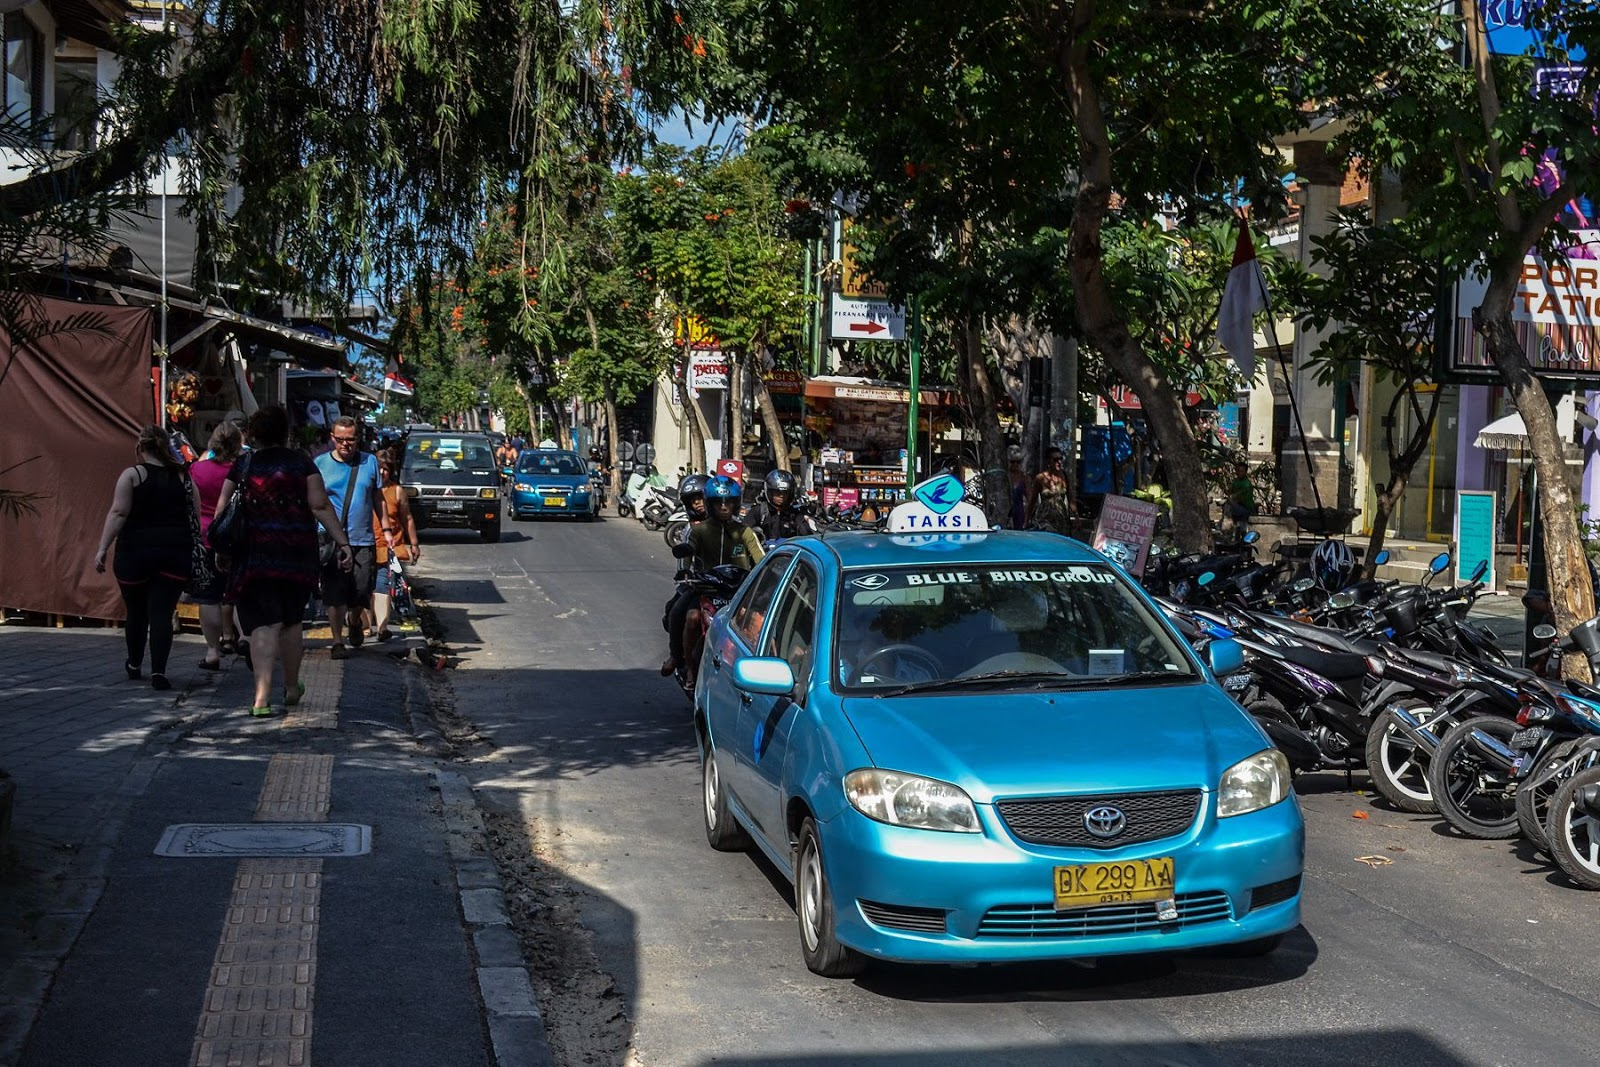 How to Ride Blue Bird Taxi & Others in Bali, Indonesia